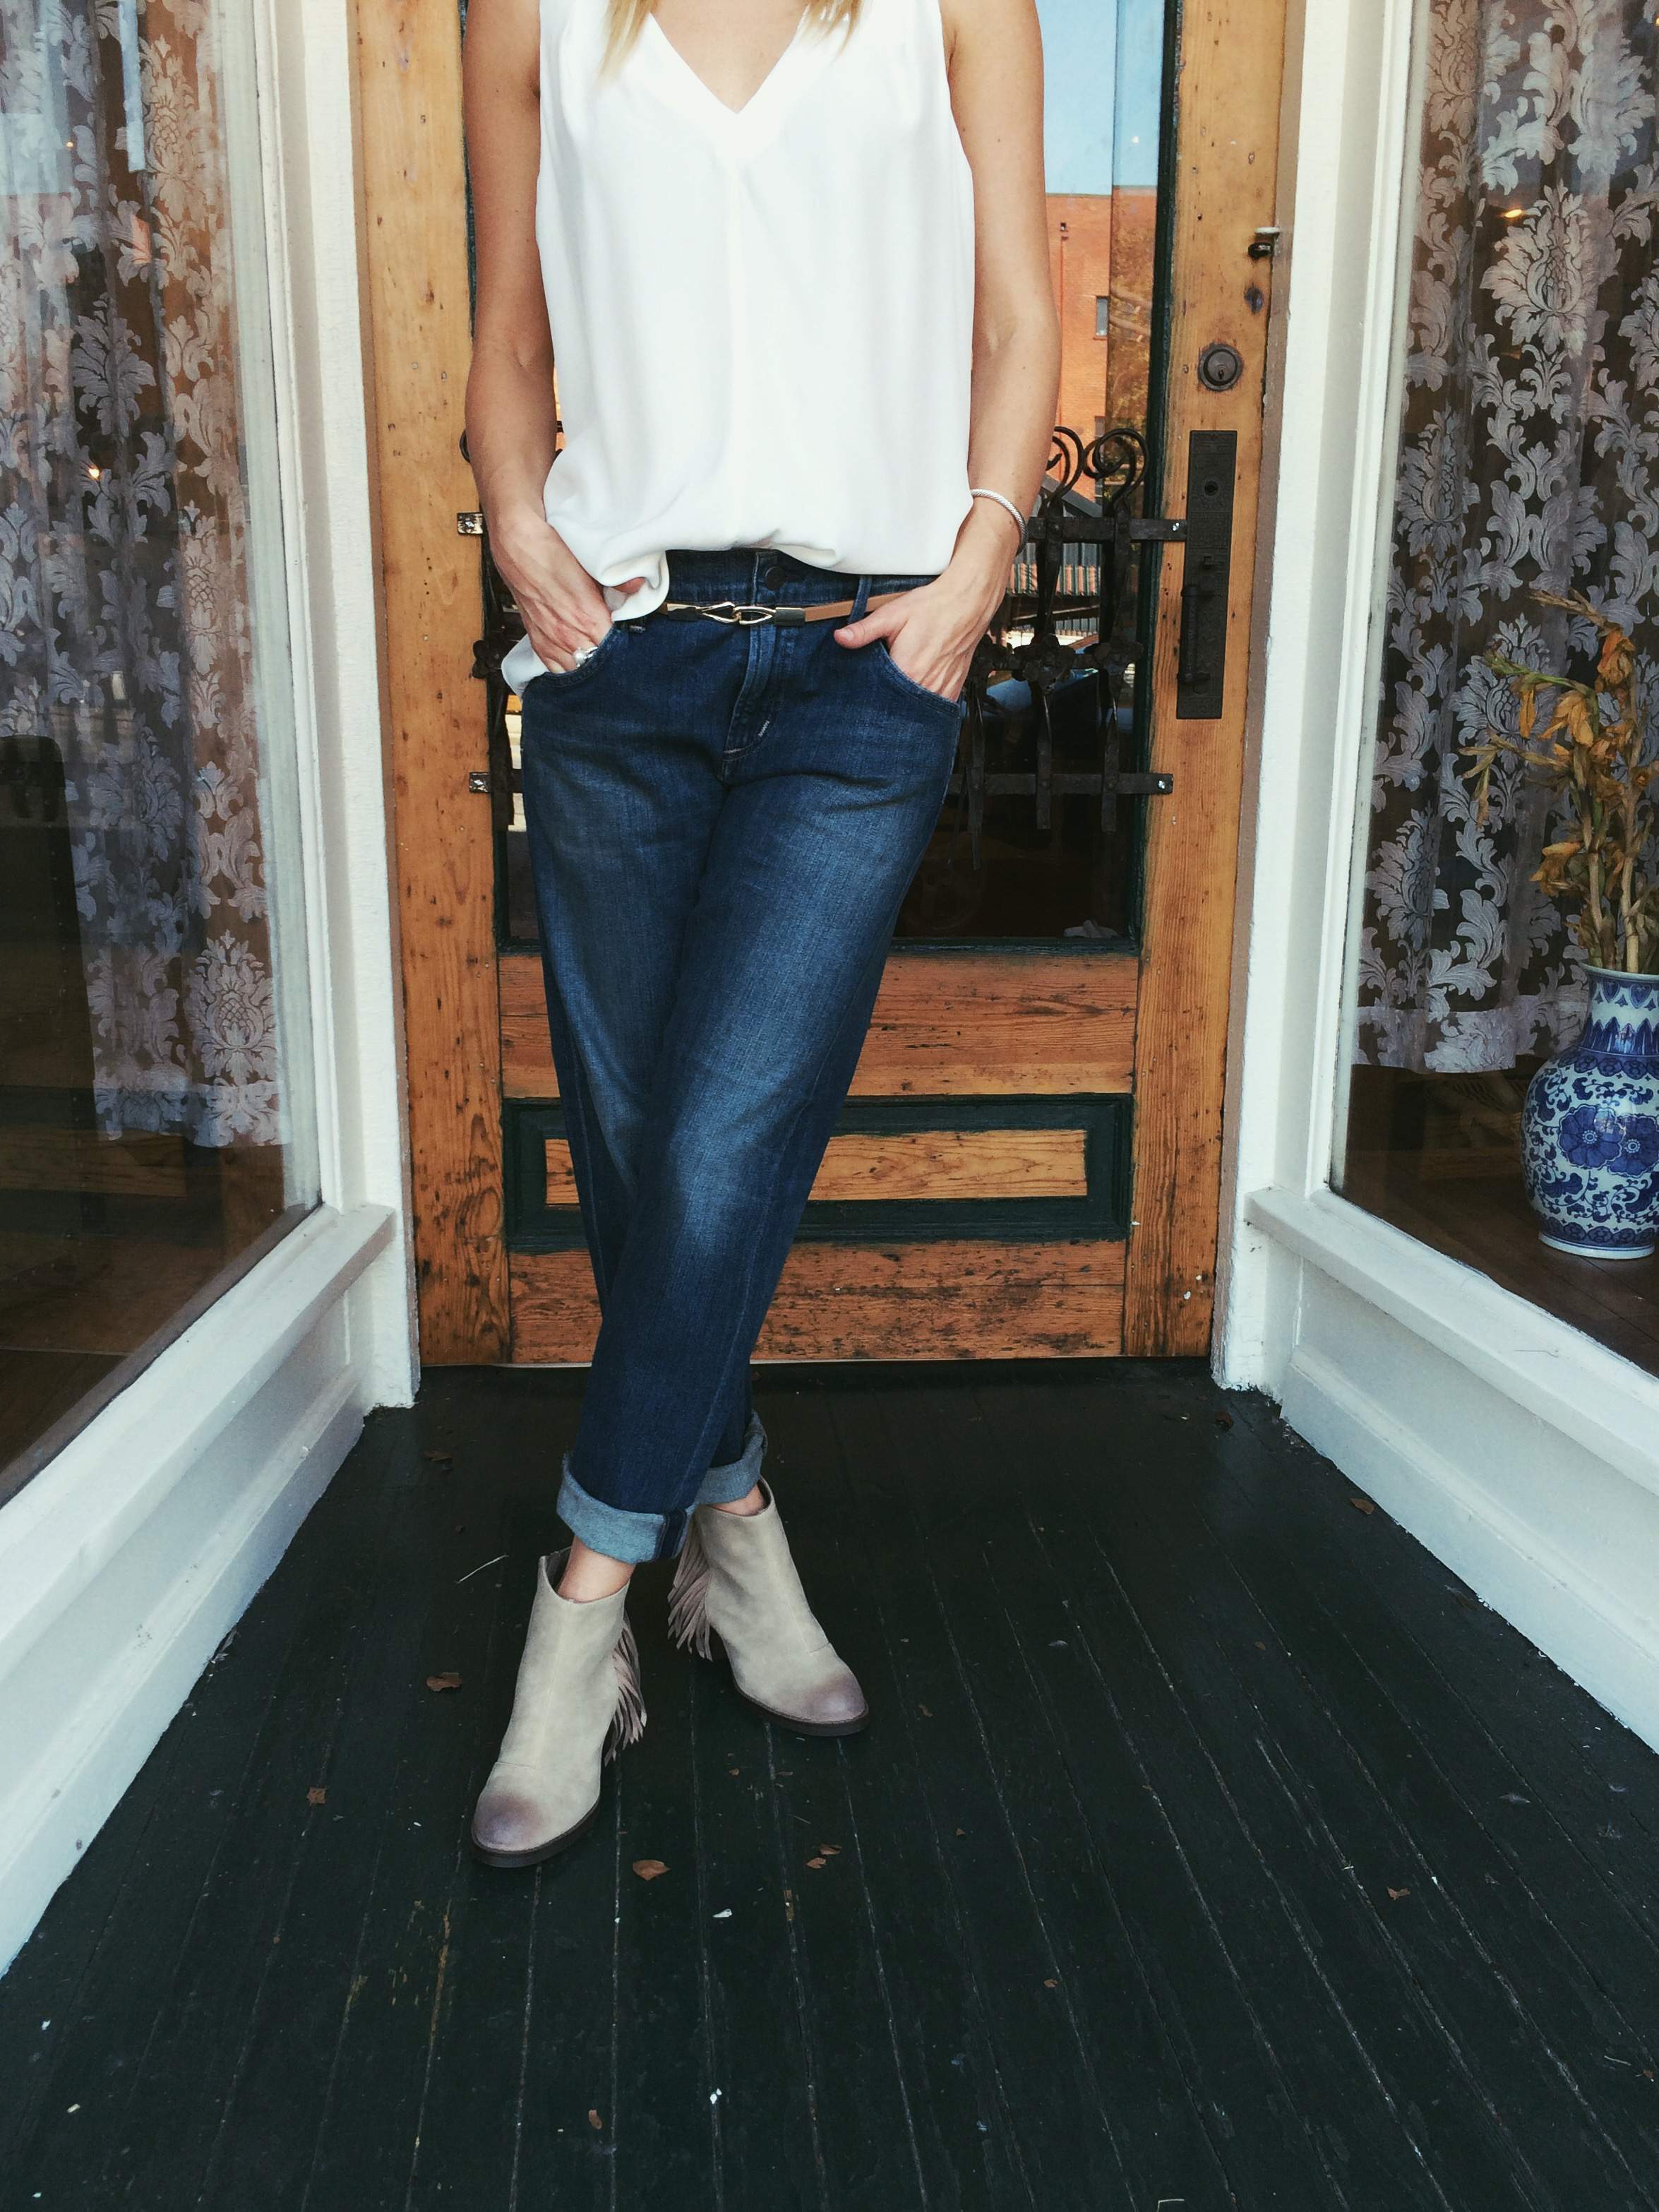 Jeans: Citizens of Humanity. Top: Alice & Trixie. Shoes: Seychelles.